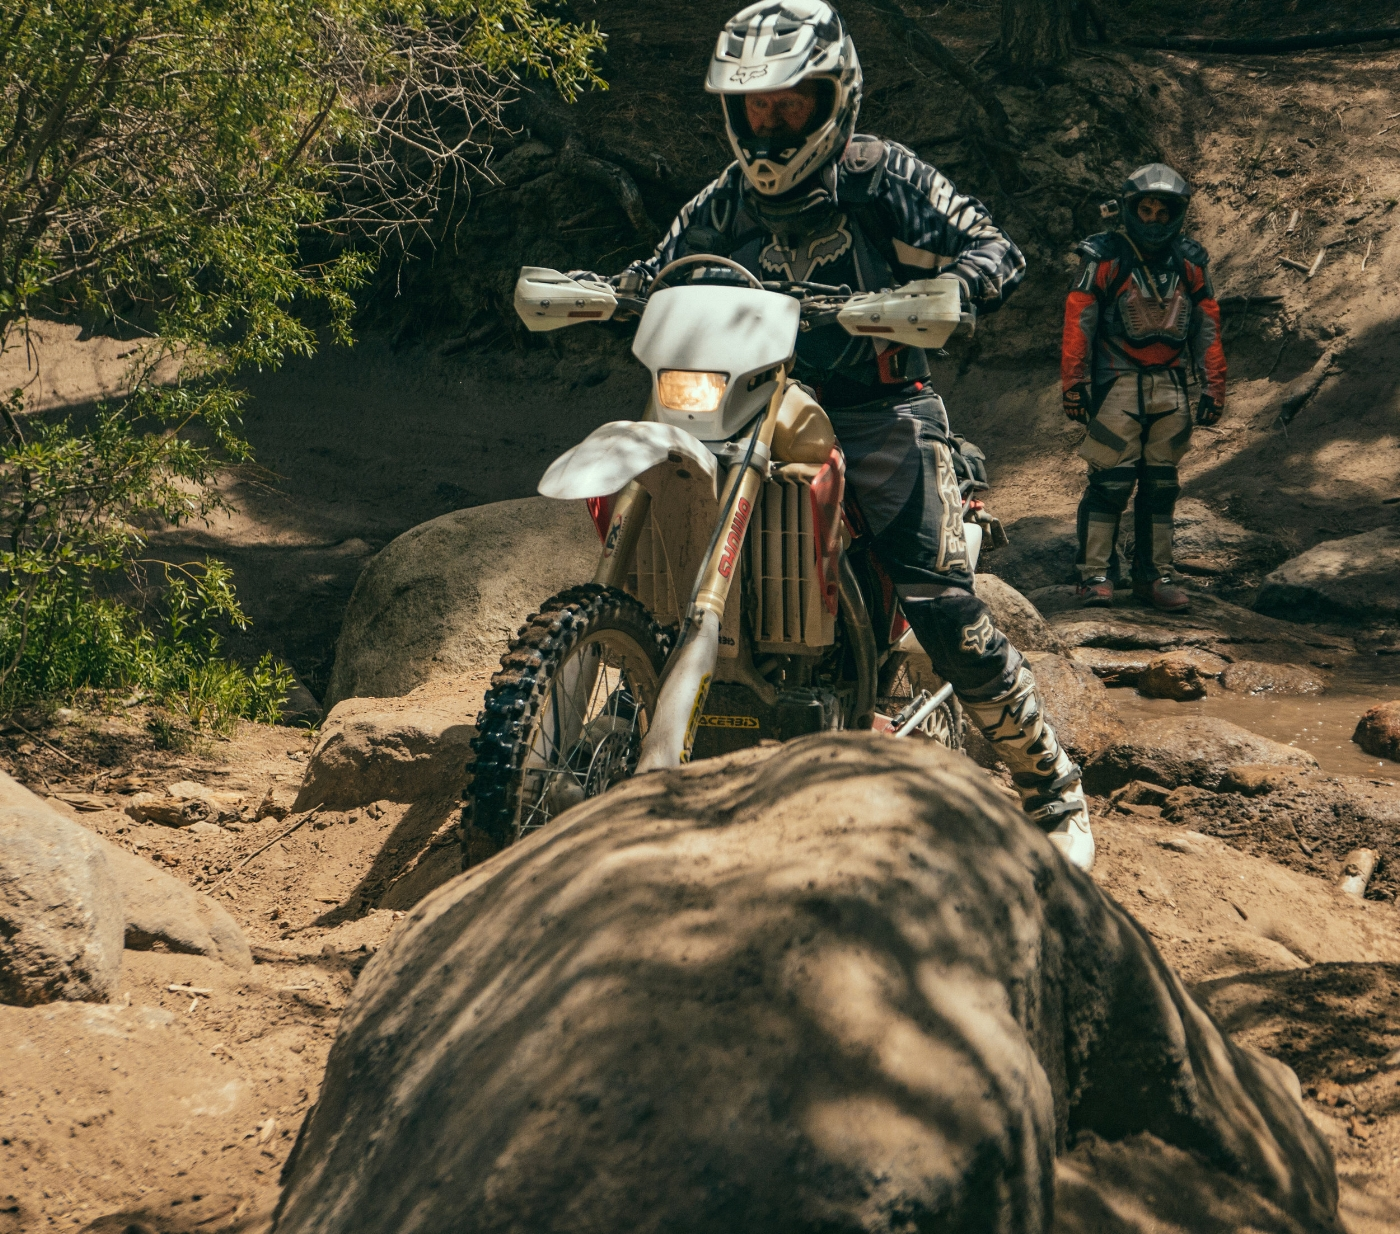 If you ever get the chance to ride with the crew of WLF Enduro, be prepared to go to work!